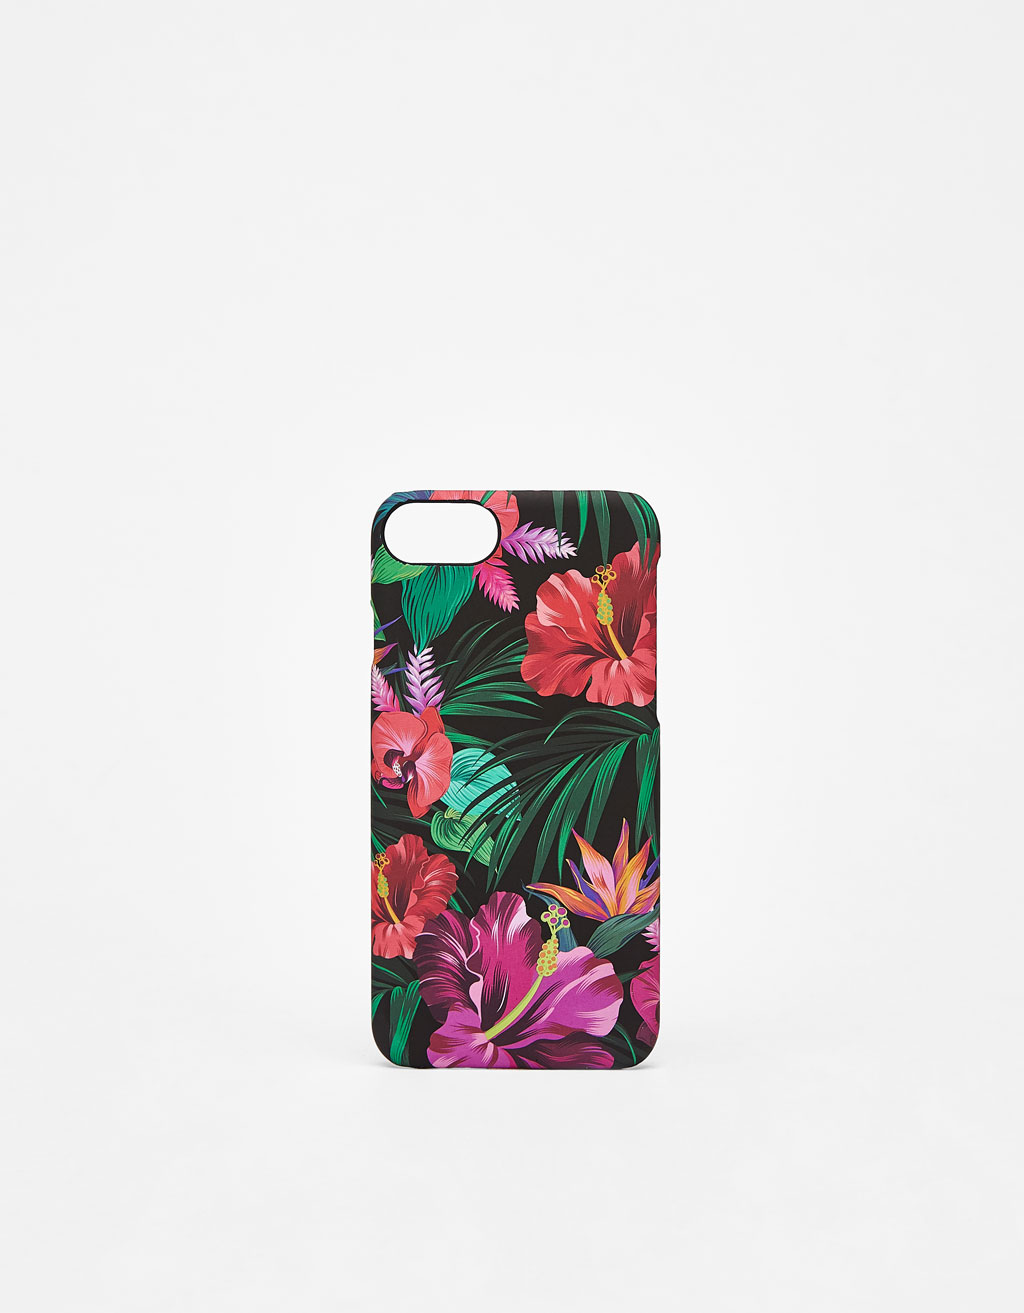 Carcasa de flores tropicales iPhone 6/6s/7/8